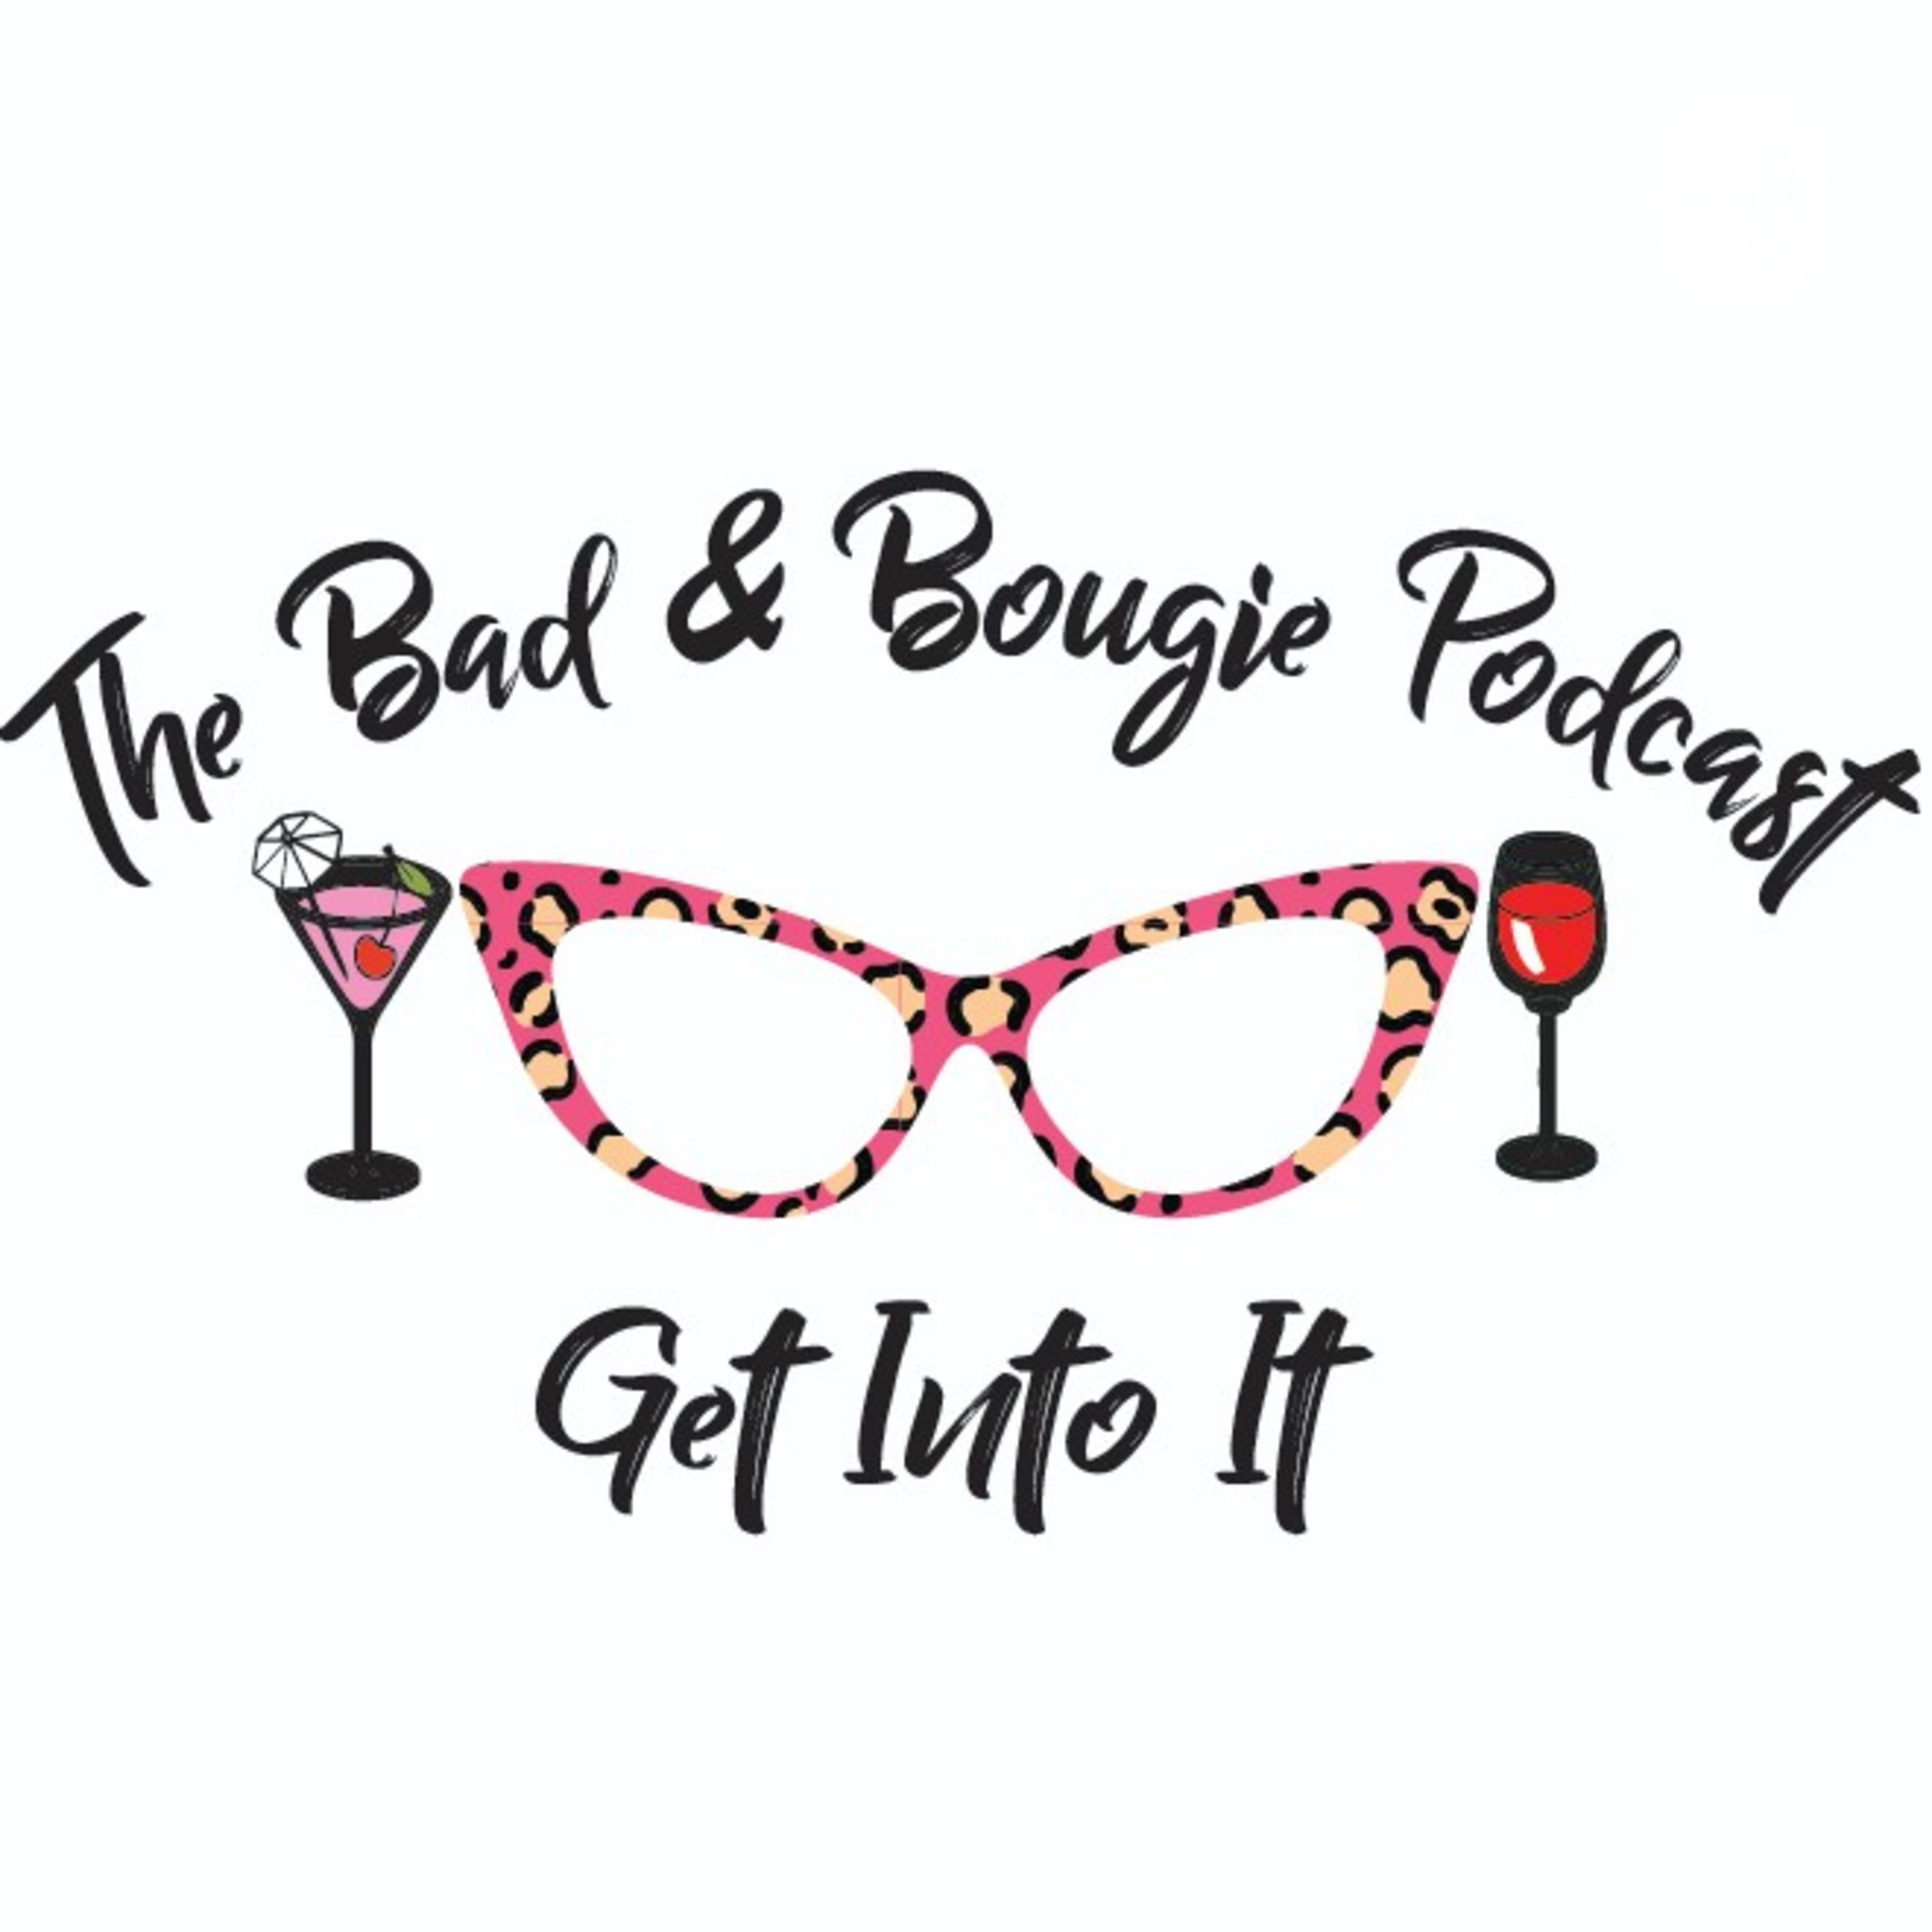 The Bad & Bougie Podcast